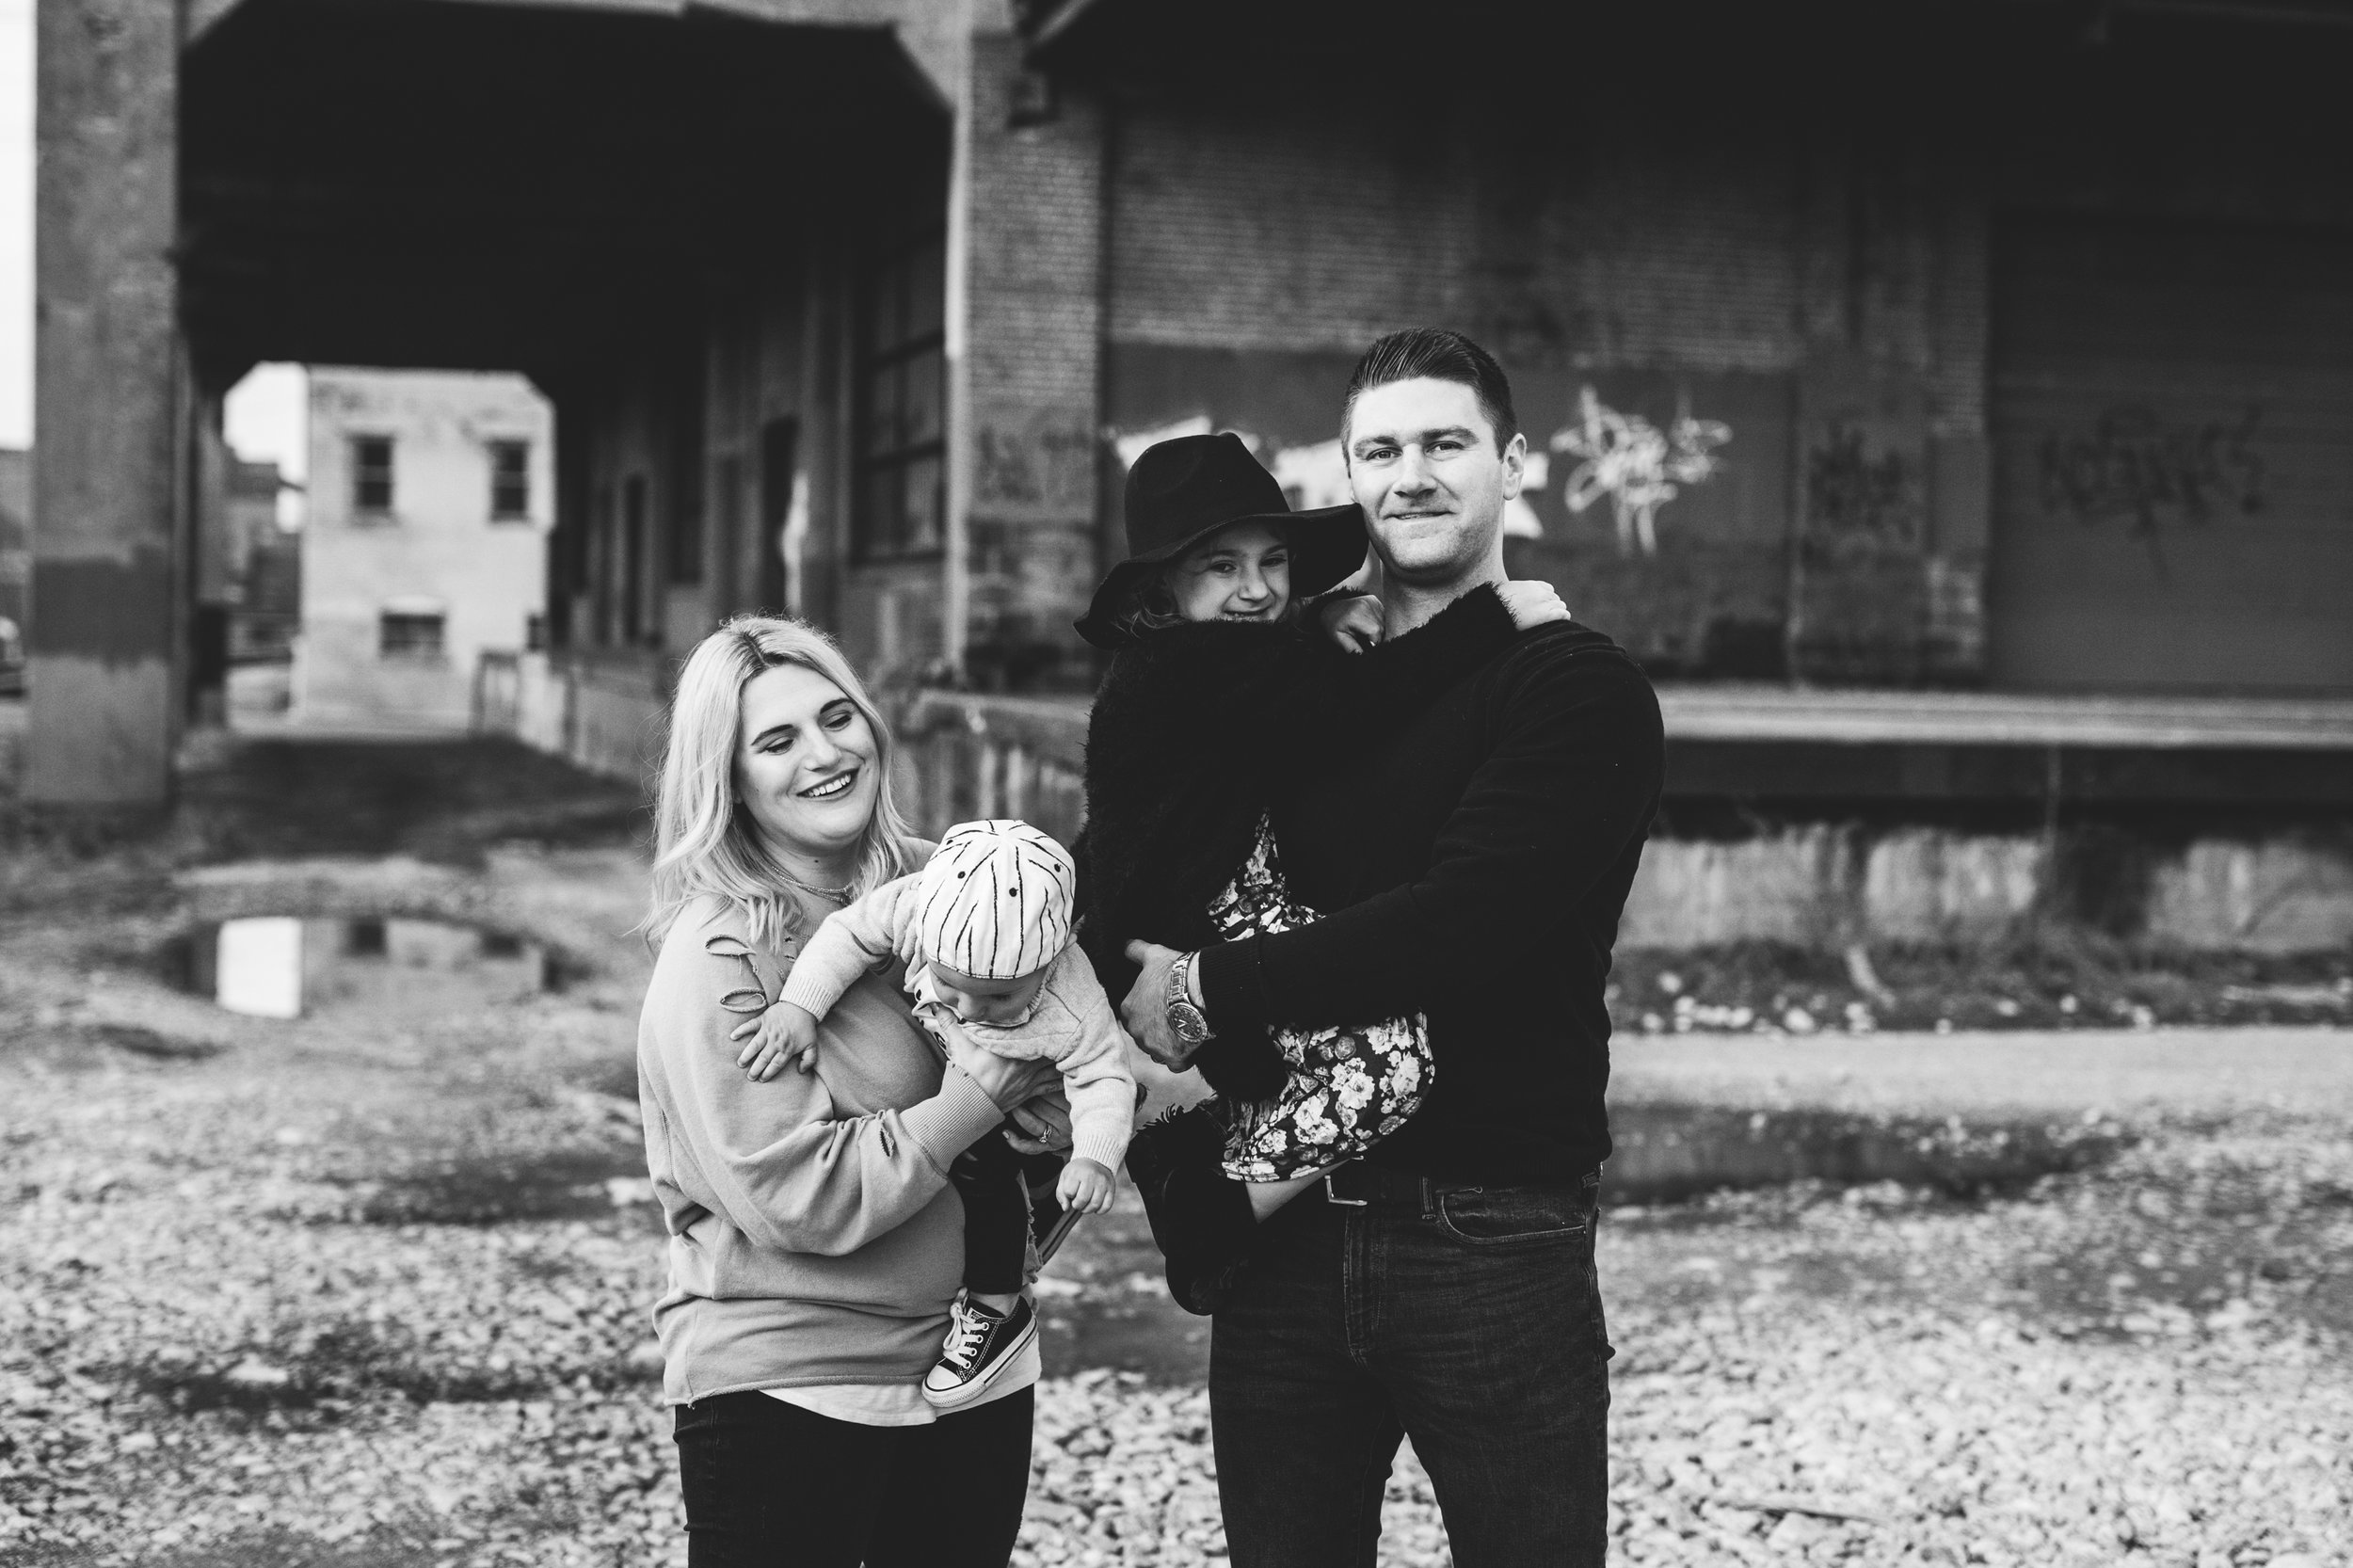 Aldred Family 2018 Crystal Ludwick Photo Louisville Kentucky Wedding Photographer (55 of 58).jpg